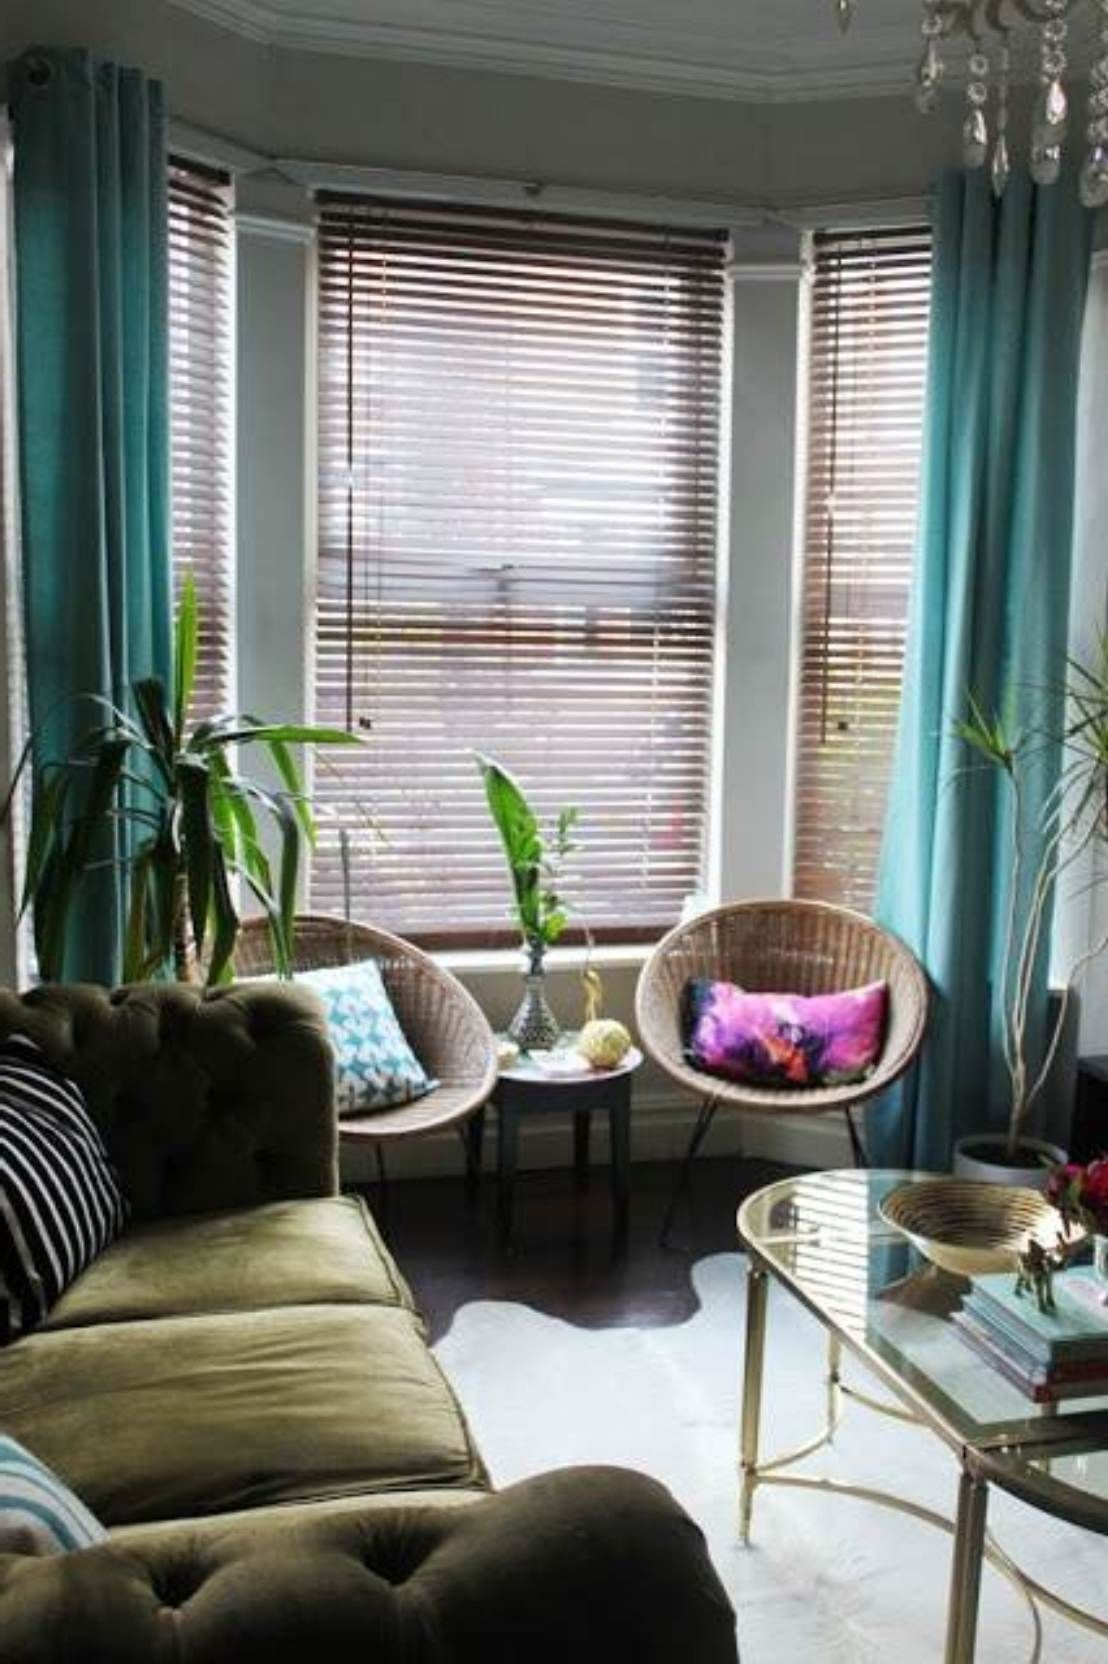 Living room curtain ideas for bay windows - Ideas For Bay Window Decorating